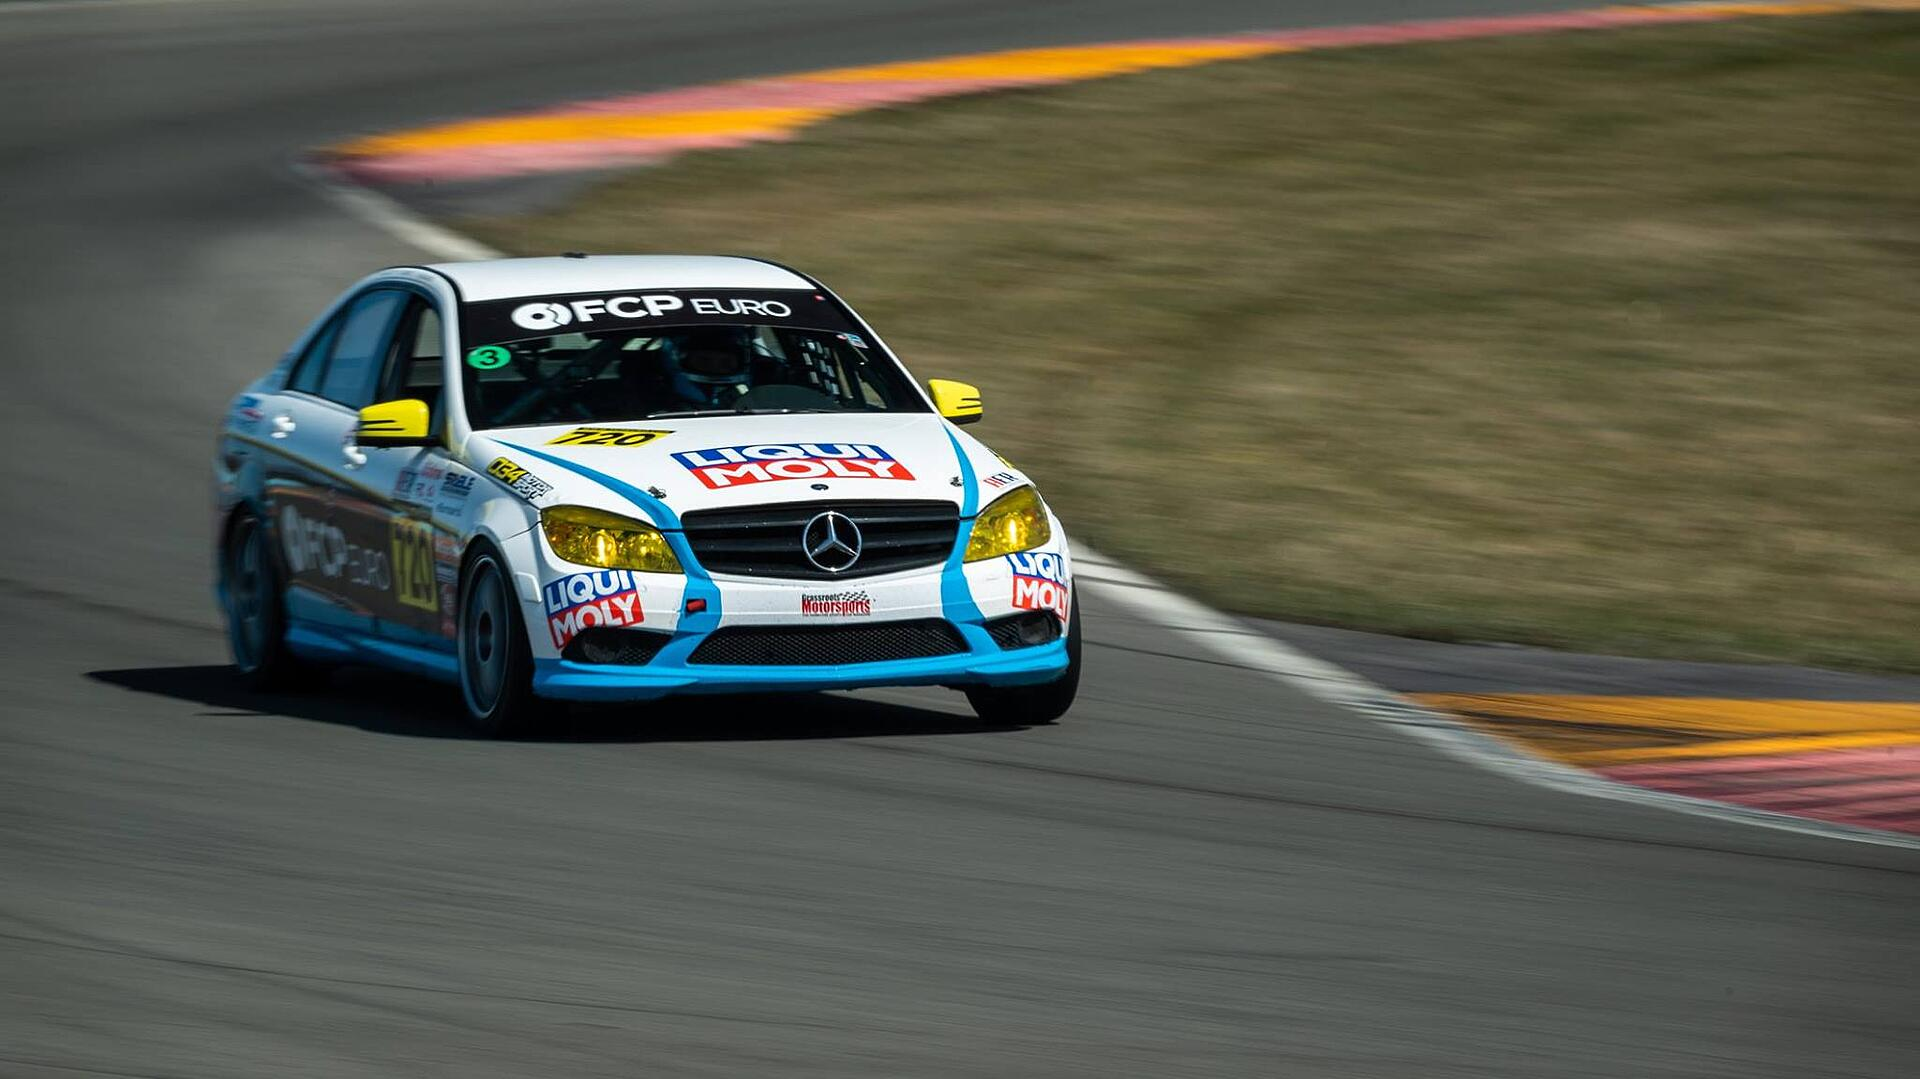 FCP Euro Mercedes-Benz C300 Endurance Race Car AER